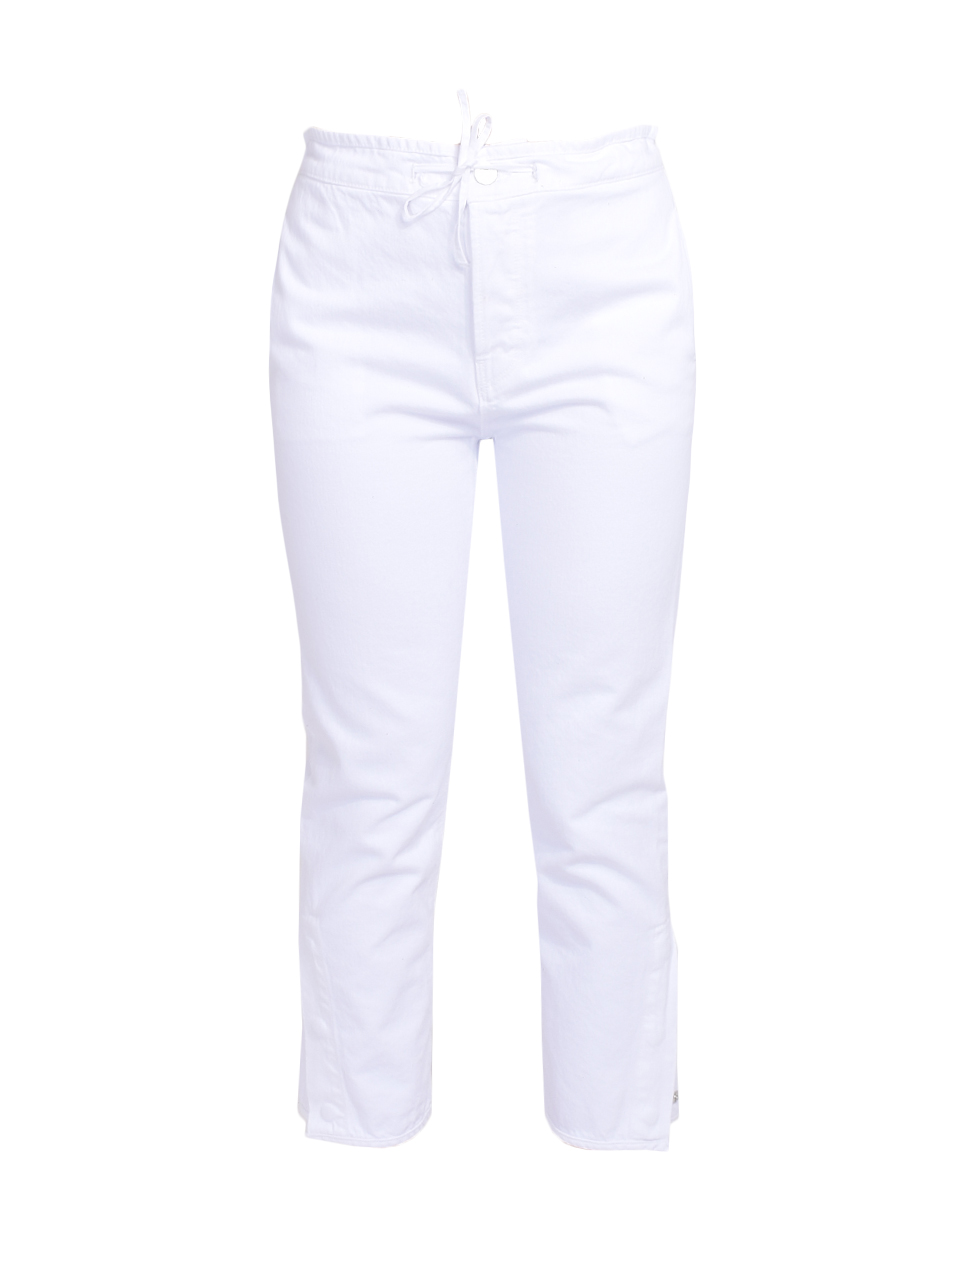 Matisse Pants in Optic White Product Shot